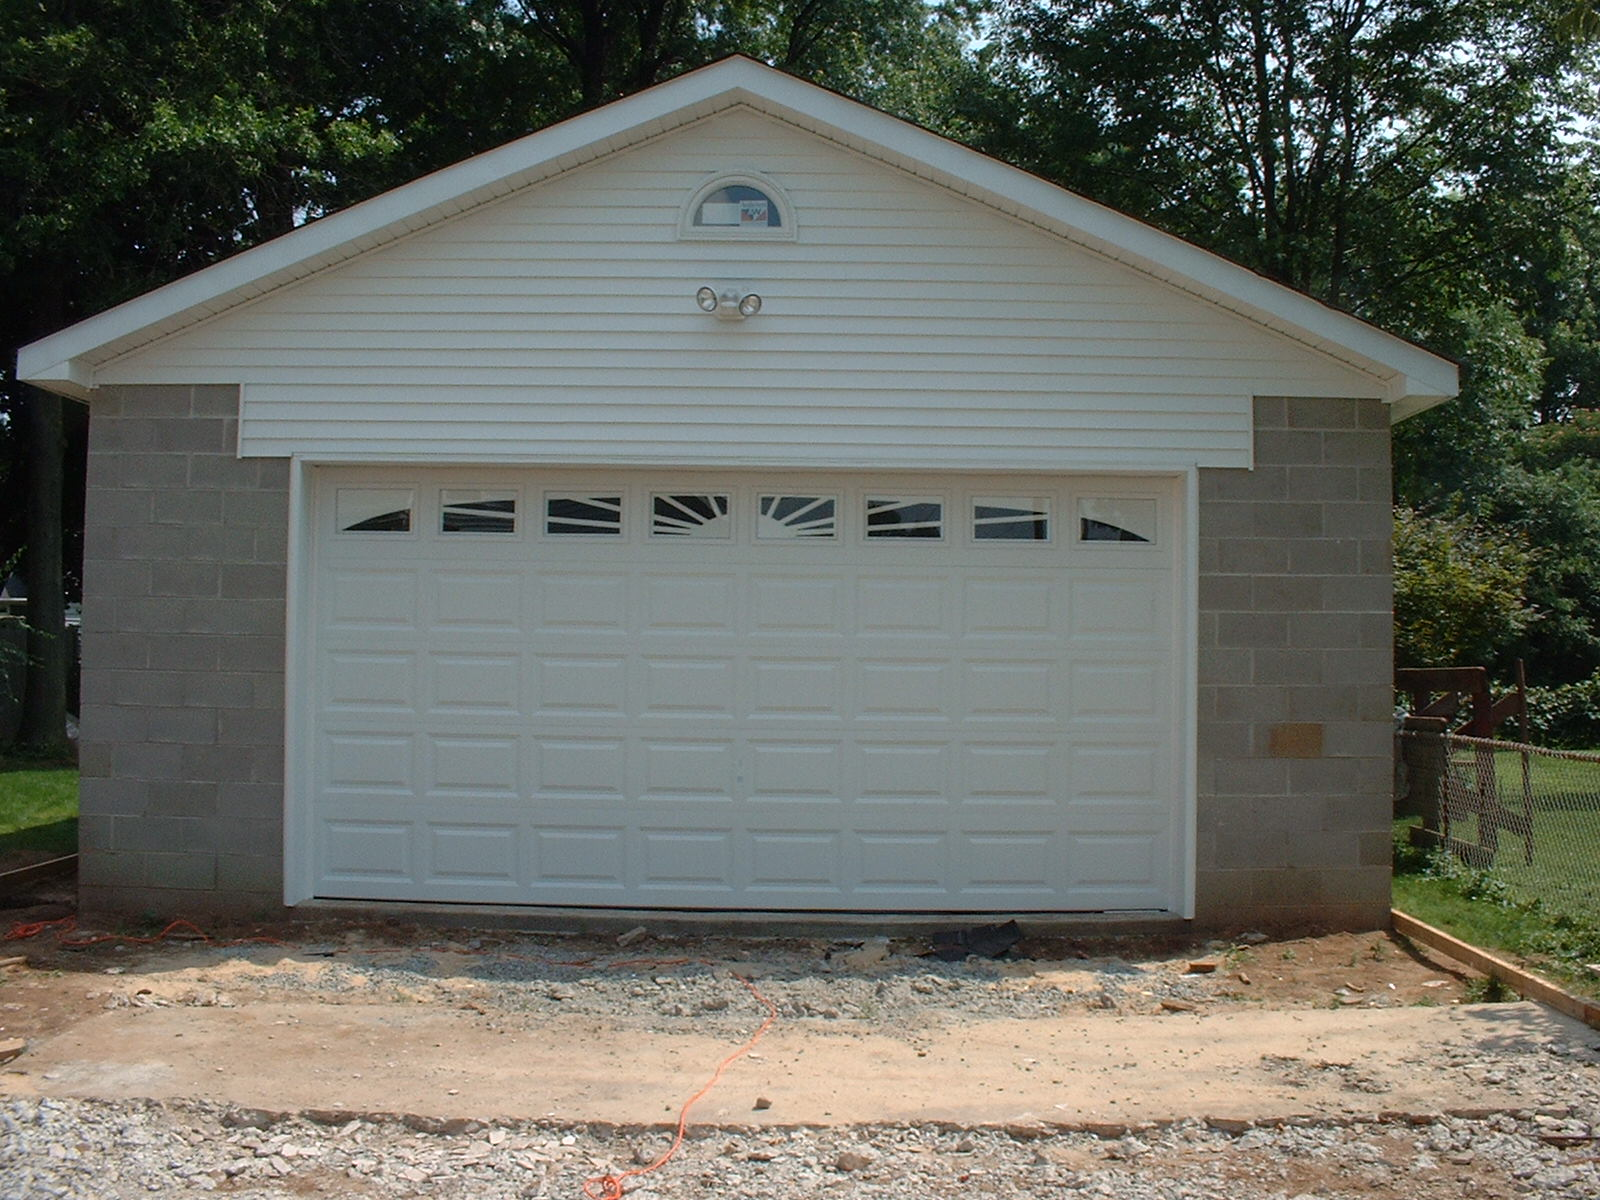 garage with kit exciting for window gar designs outstanding ideas kits full of size through windows doors walk kitchen cabinets door